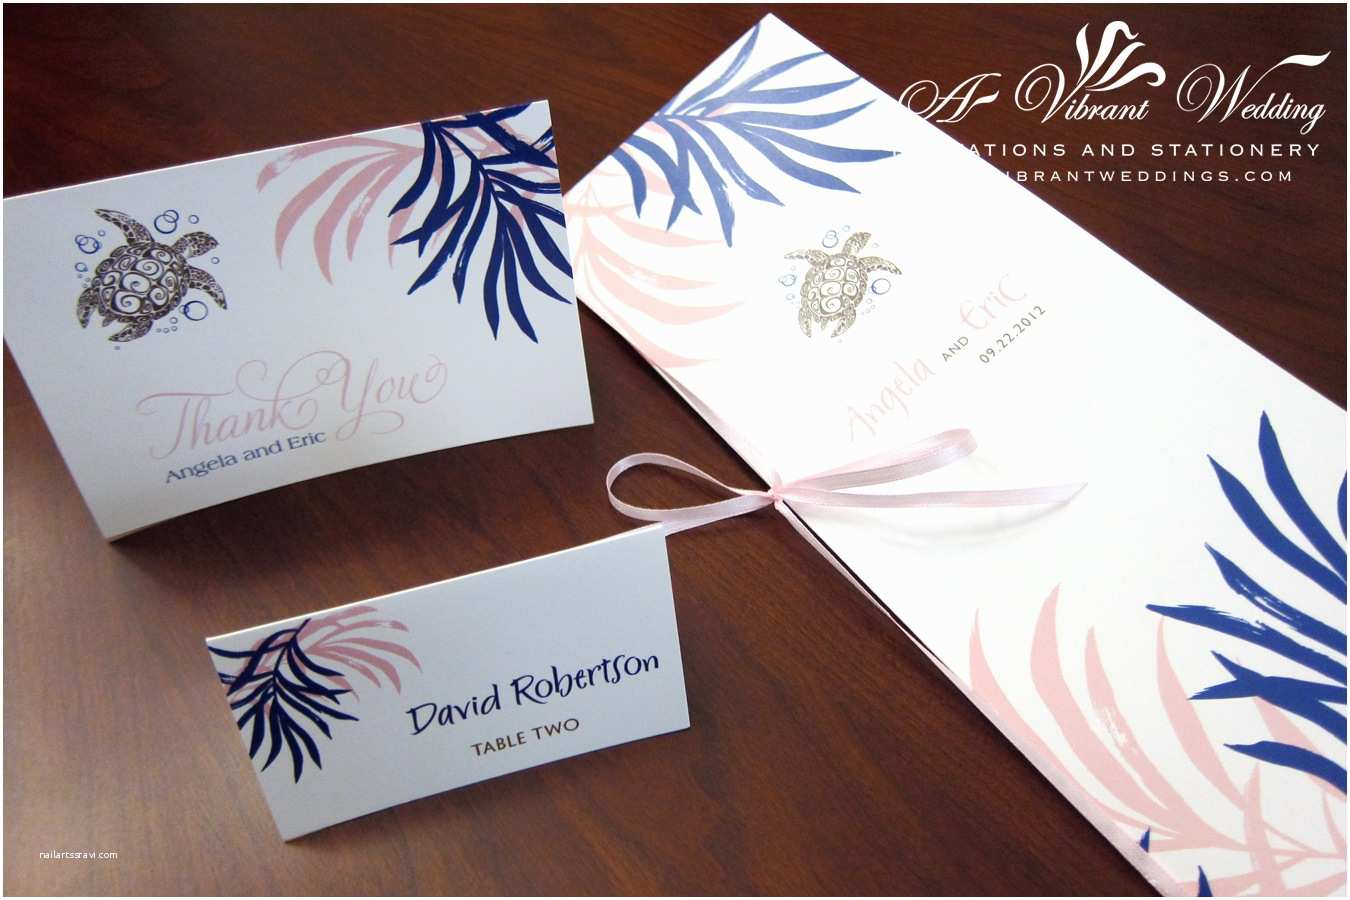 Turtle Wedding Invitations Place Cards – A Vibrant Wedding